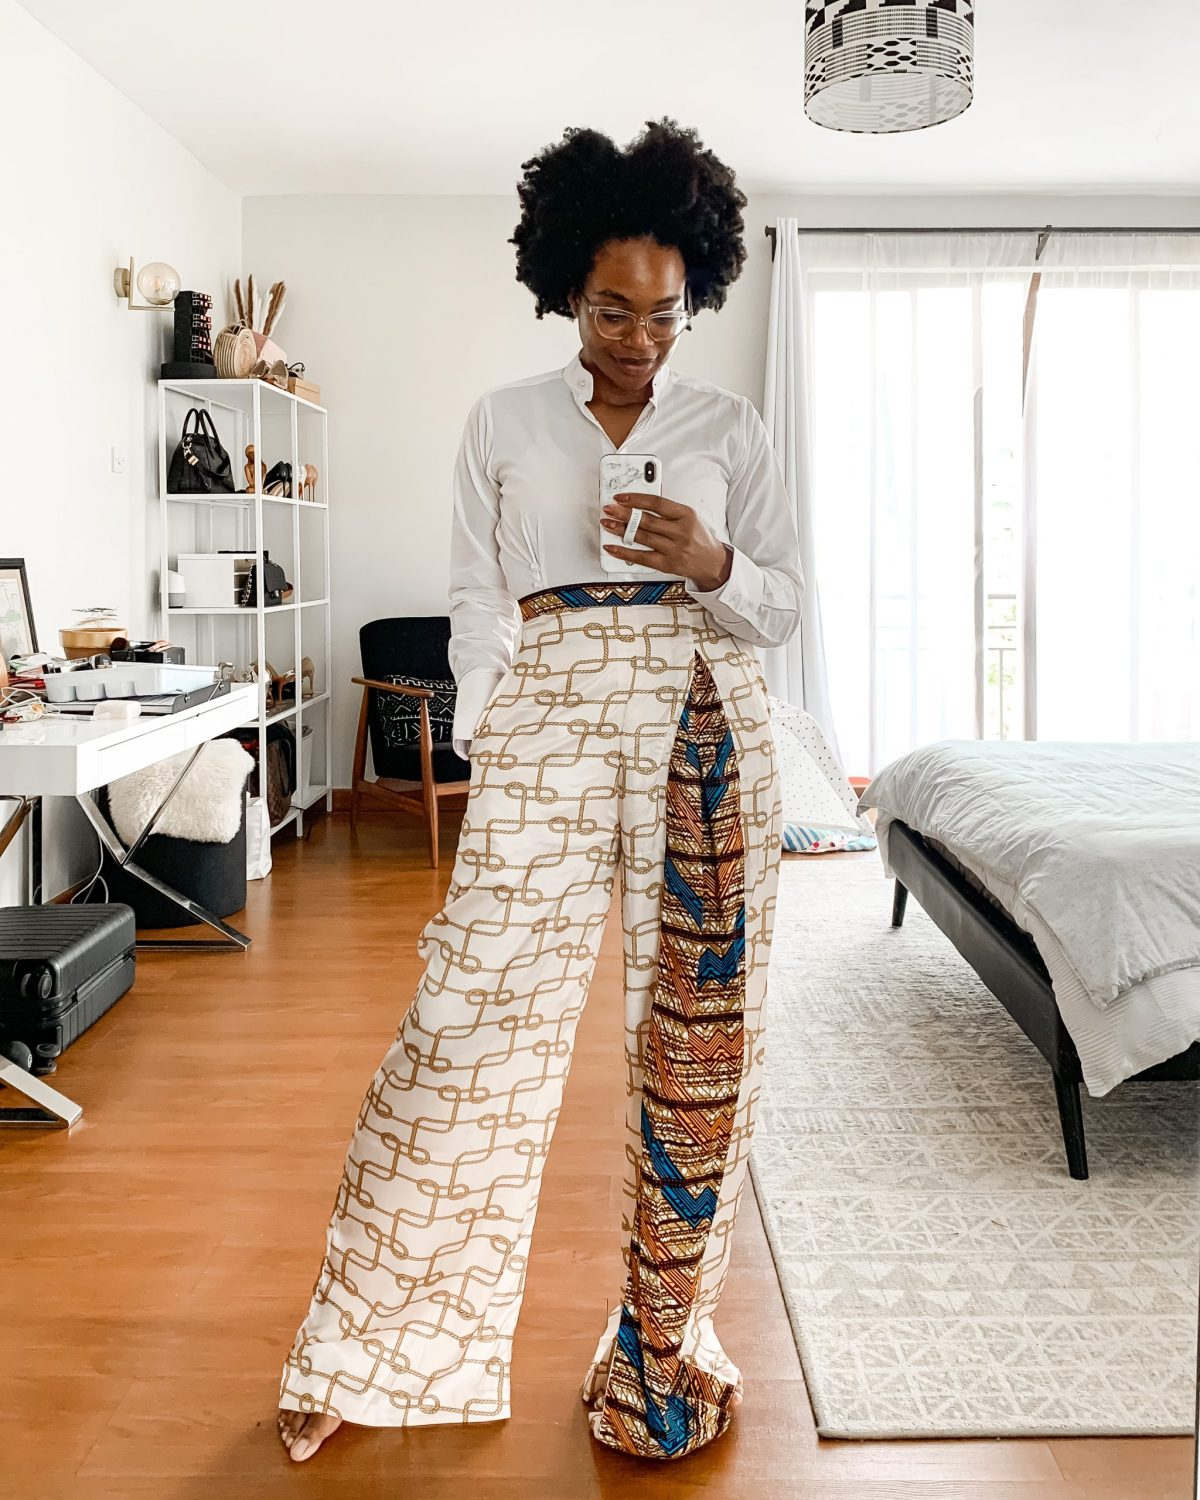 Ijeoma Kola posing in print pants and white shirt taking mirror selfie - Financial lessons blog